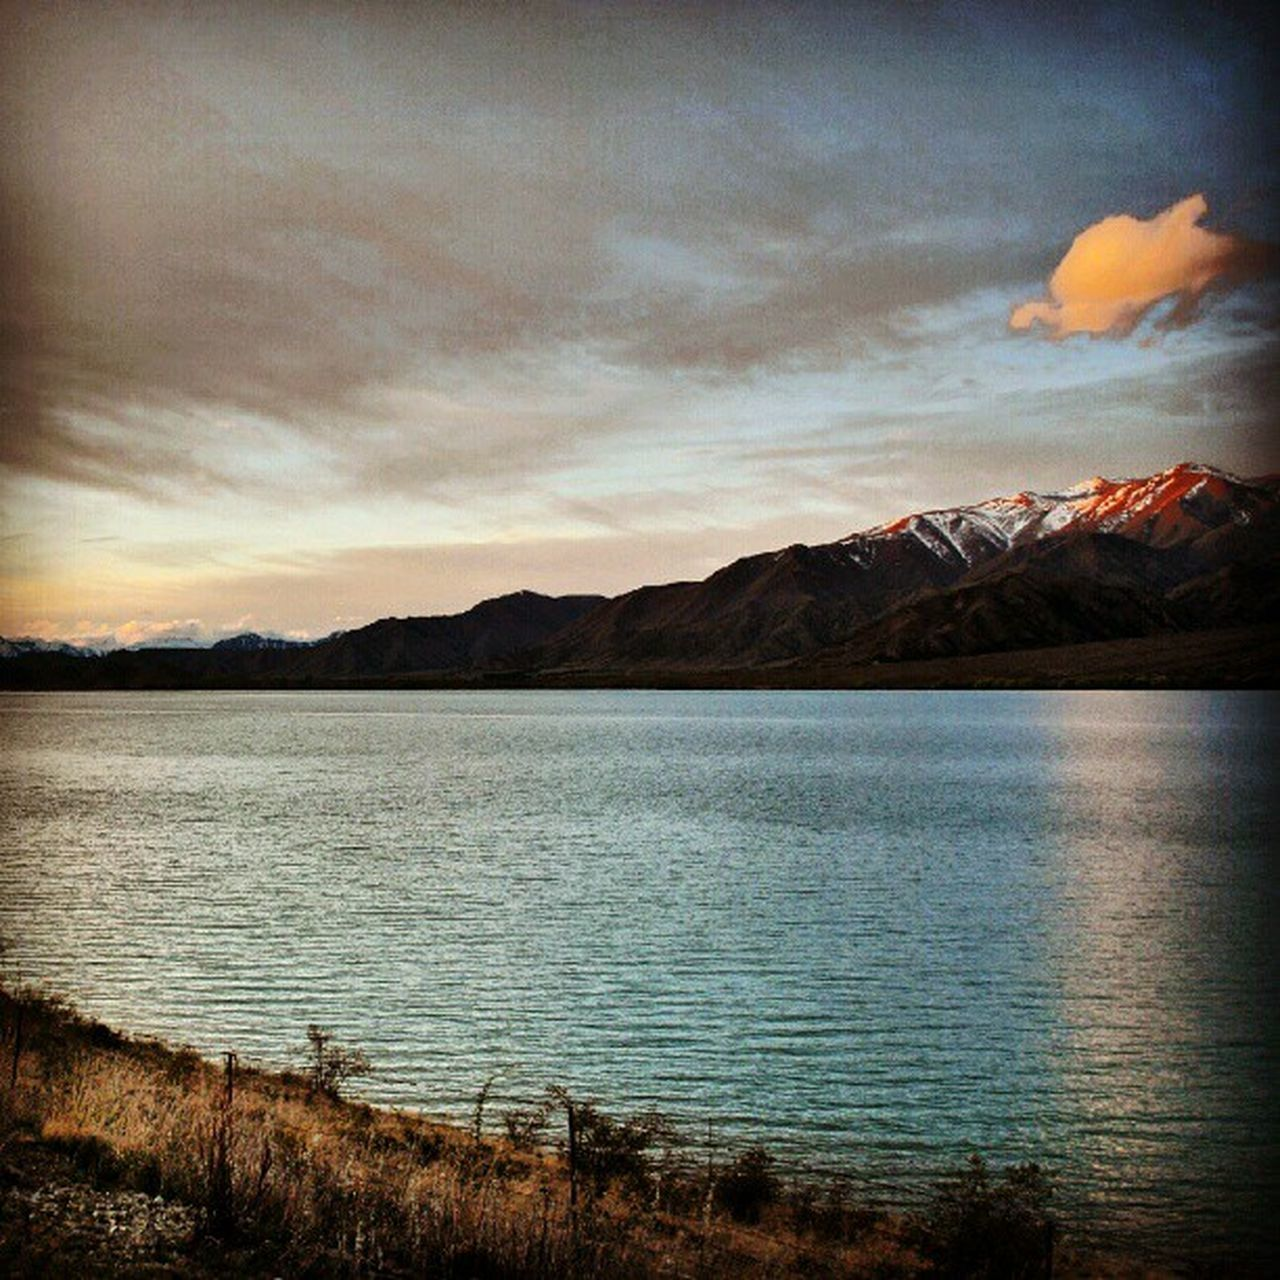 scenics, nature, beauty in nature, tranquil scene, tranquility, lake, mountain, water, sunset, sky, no people, idyllic, outdoors, landscape, travel destinations, mountain range, scenery, day